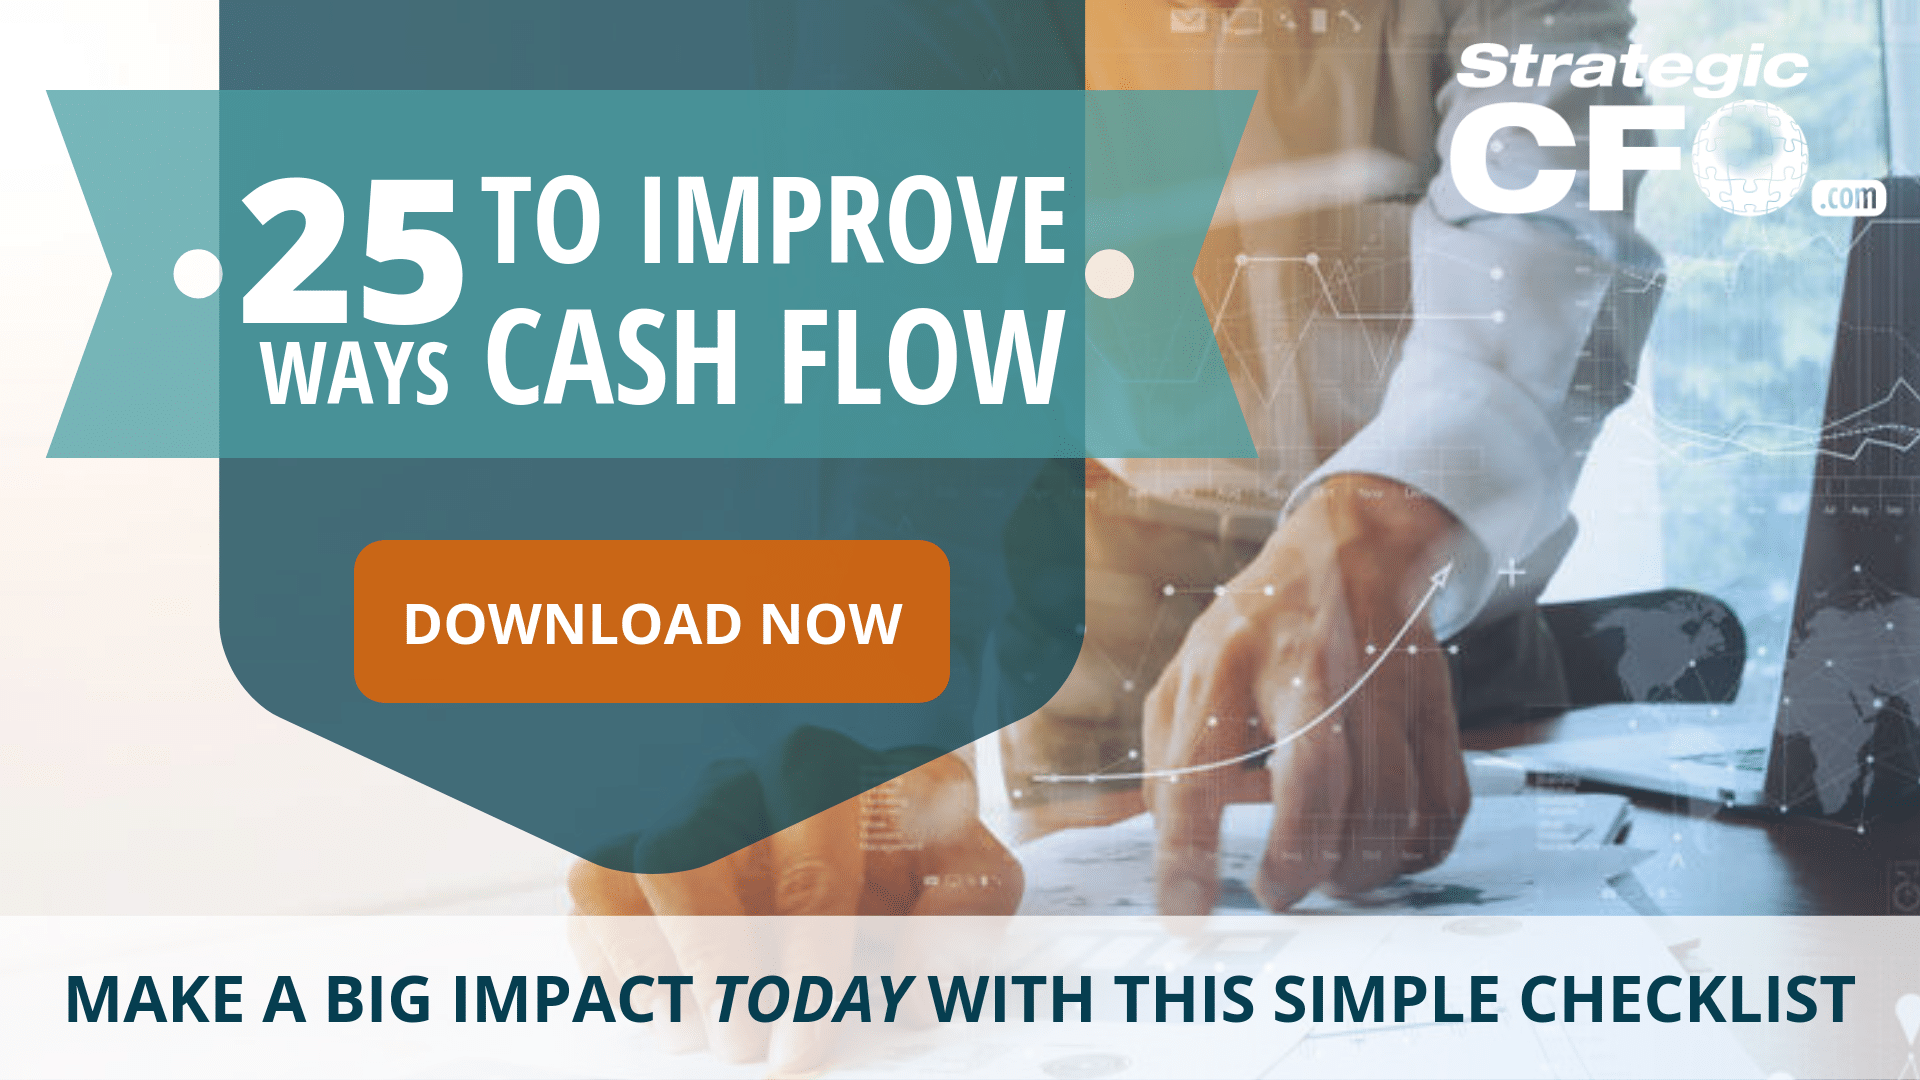 free cash flow definition, Free Cash Flow Formula